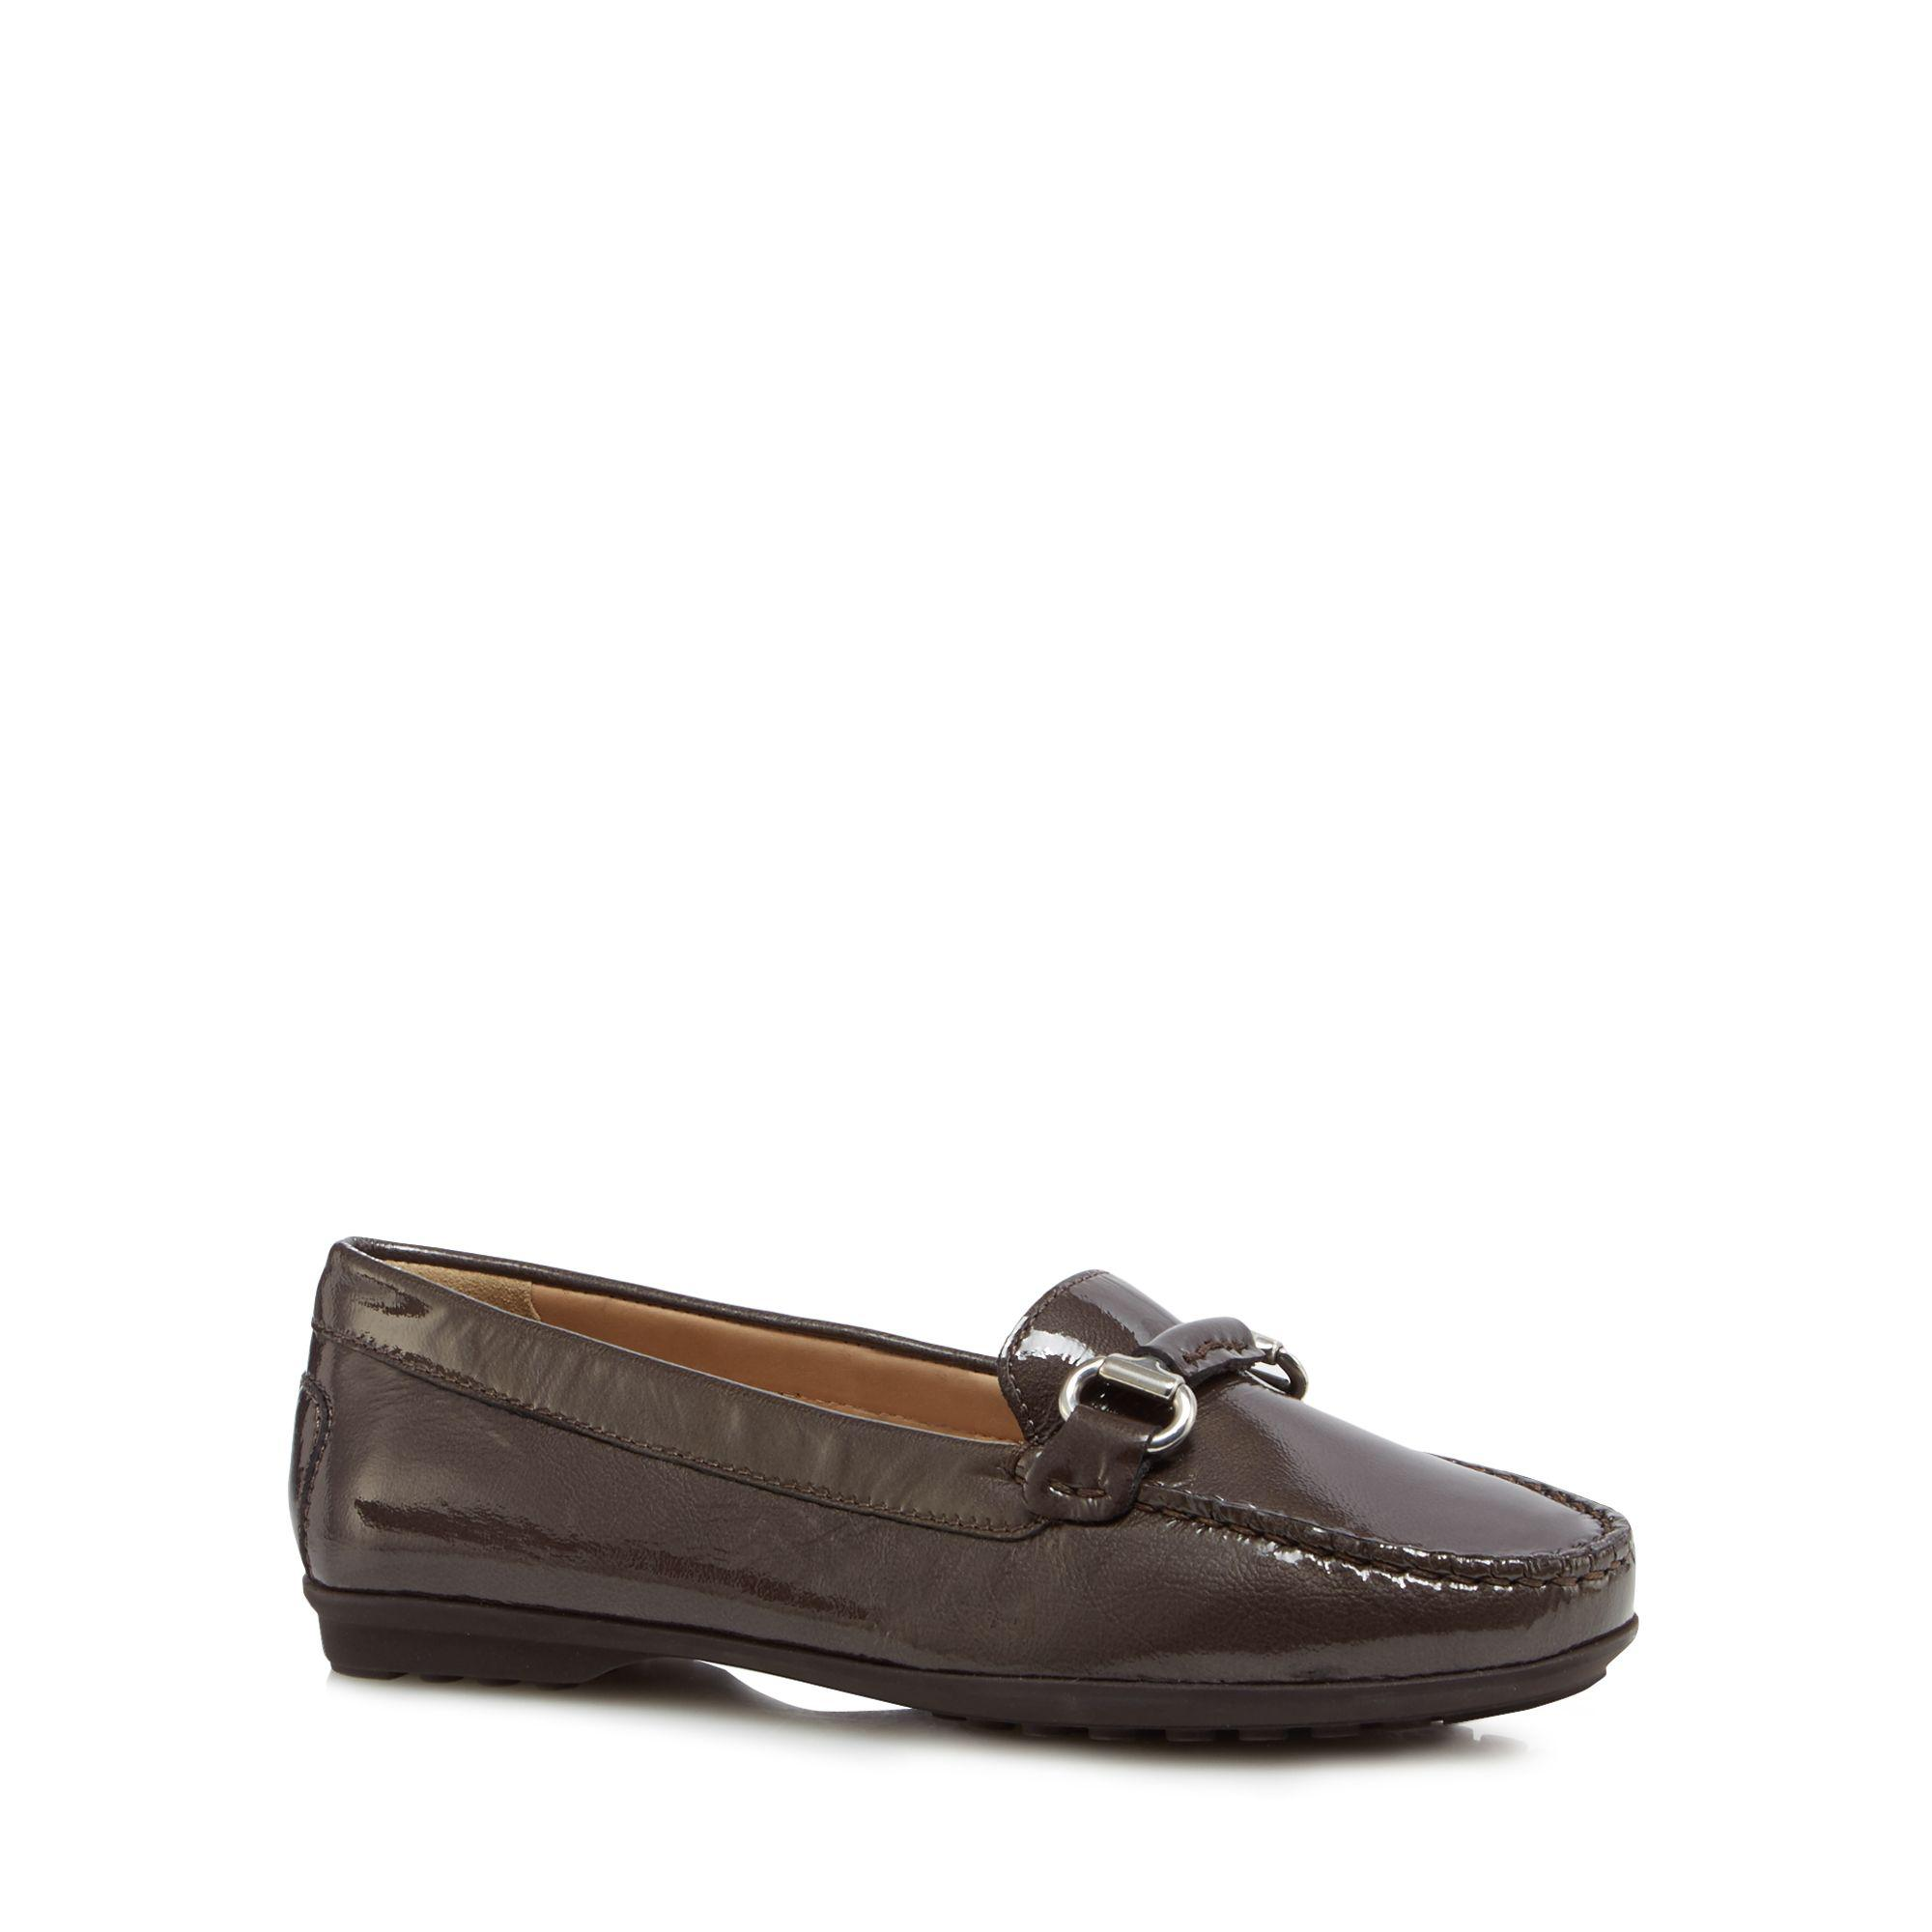 Dark brown leather 'Elidia' loafers 2014 cheap online clearance hot sale cheap sale nicekicks clearance shop cheap sale low shipping fee WFZ5IukZs